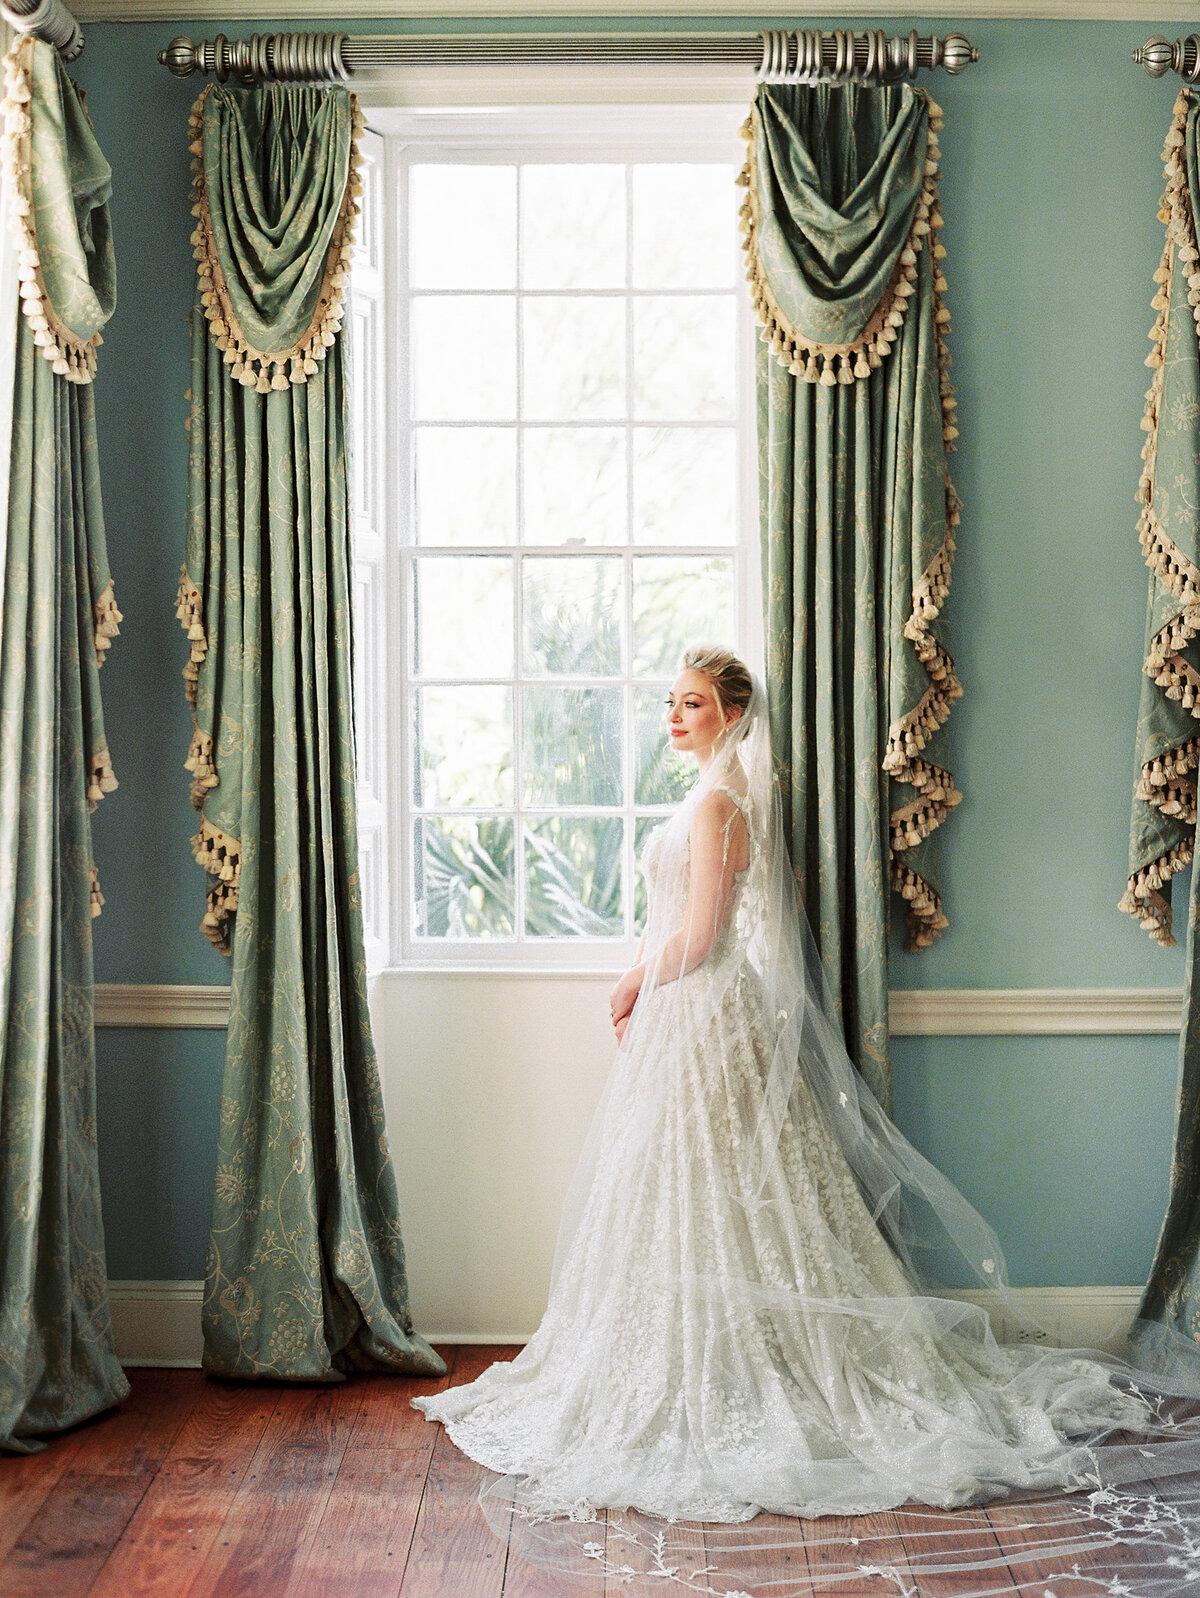 Bride in white wedding dress and veil standing at window with green curtains at Lowndes Grove Charleston